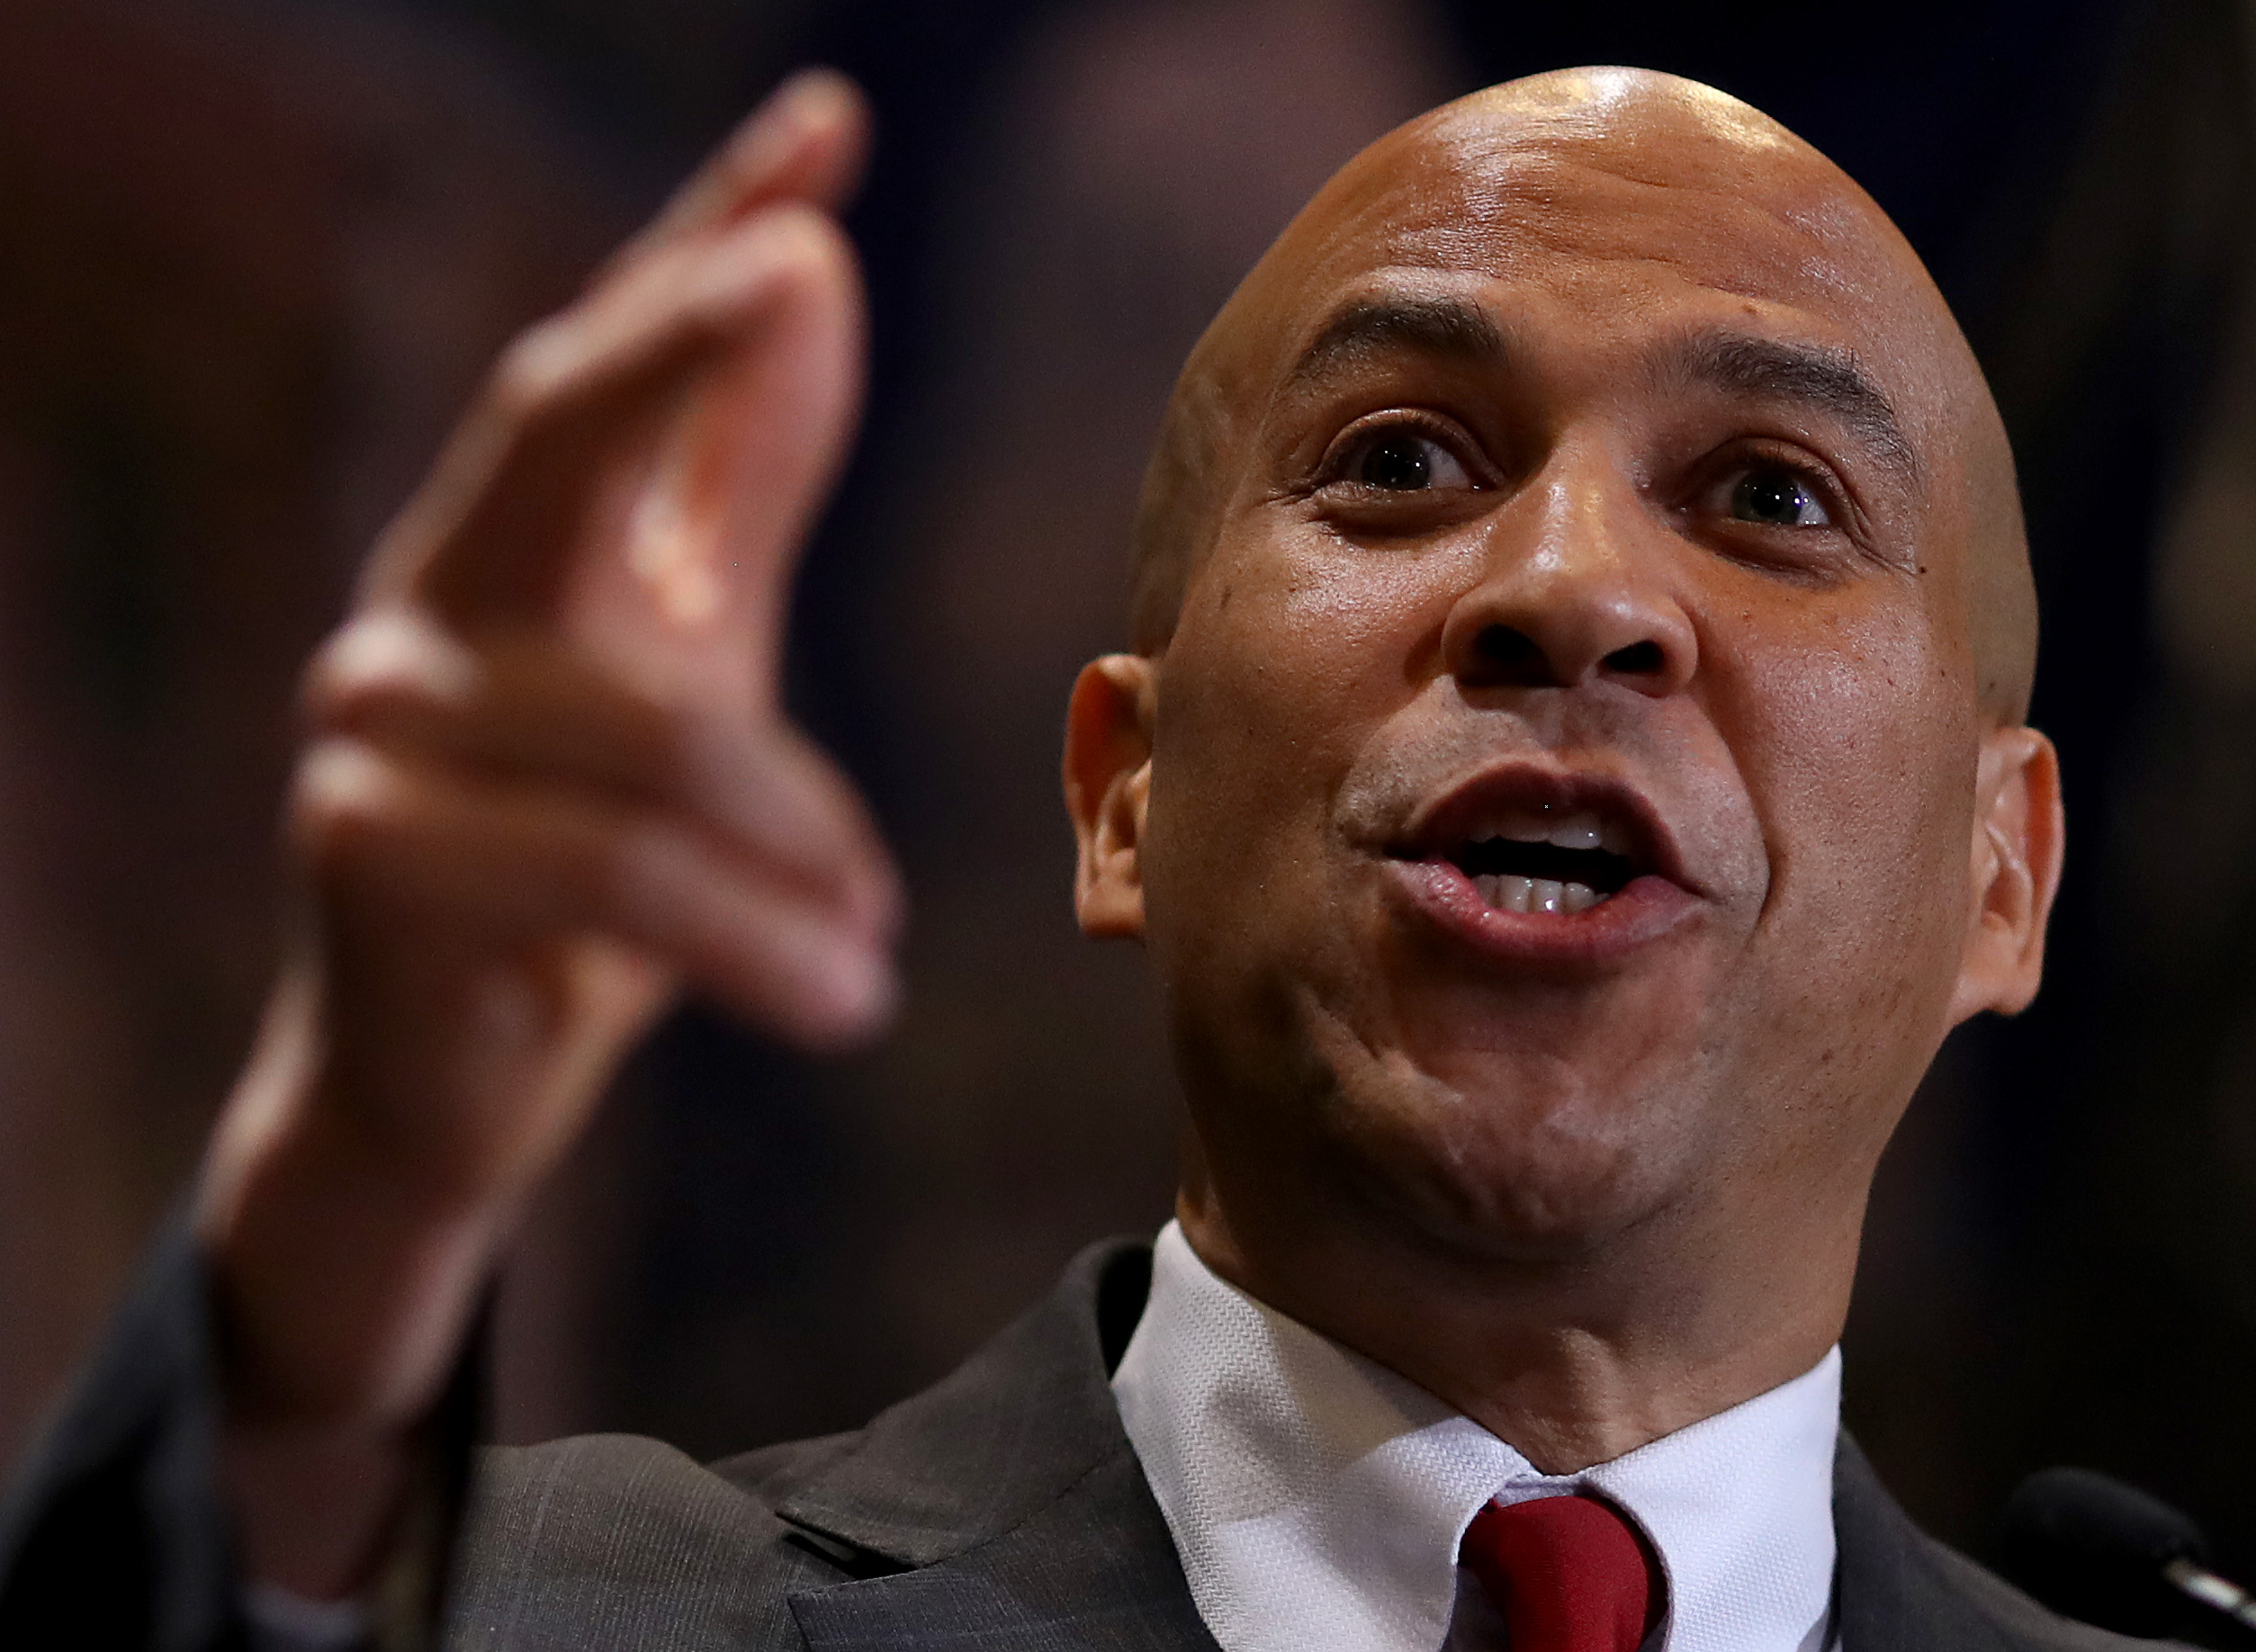 Democratic presidential candidate Sen. Cory Booker speaks at the International Association of Machinists and Aerospace Workers annual legislative conference May 7, 2019 in Washington, DC. (Photo by Win McNamee/Getty Images)